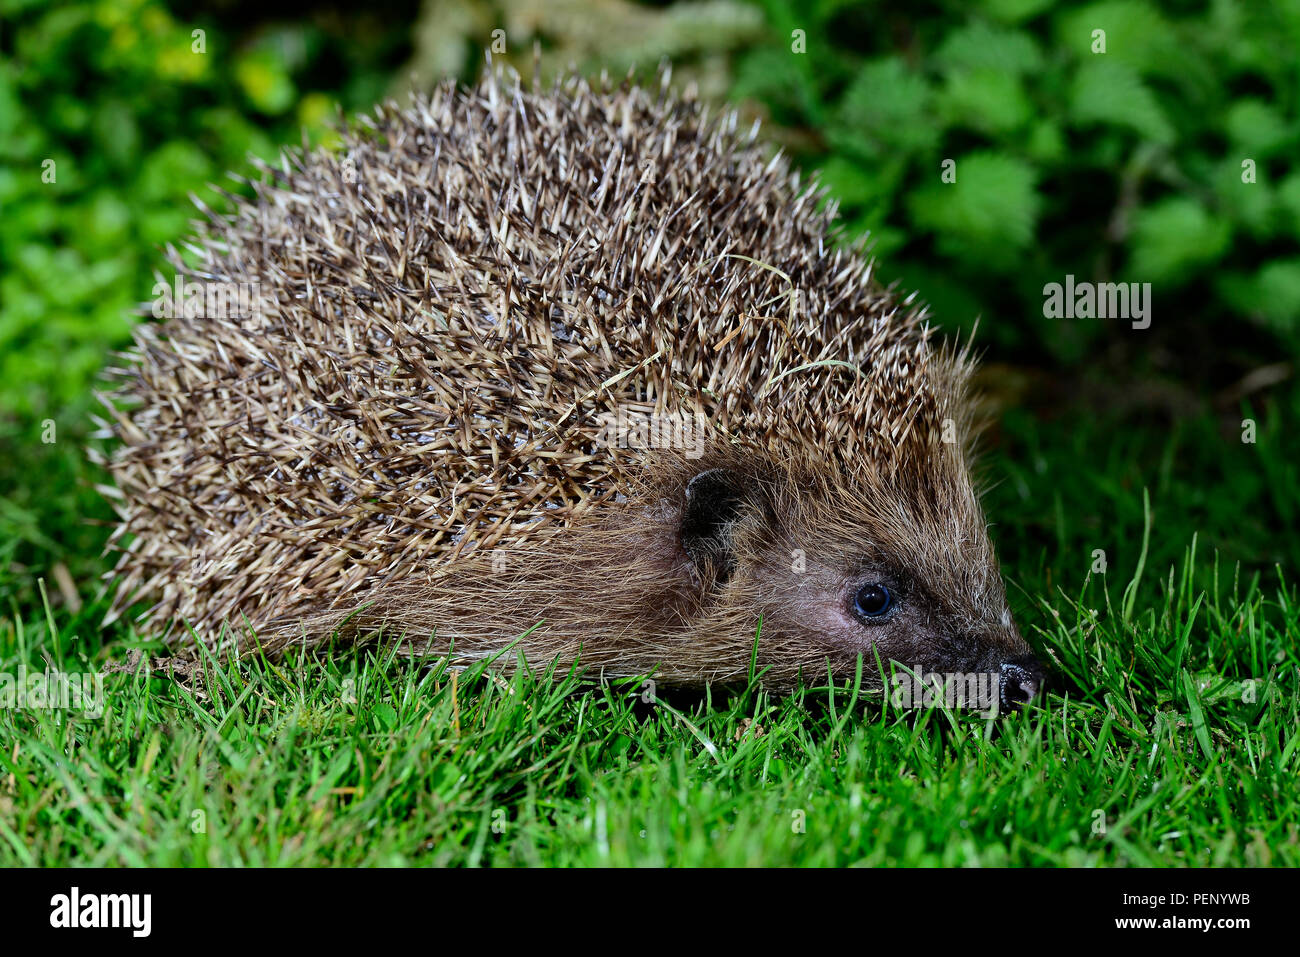 adult hedgehog foraging on lawn - Stock Image